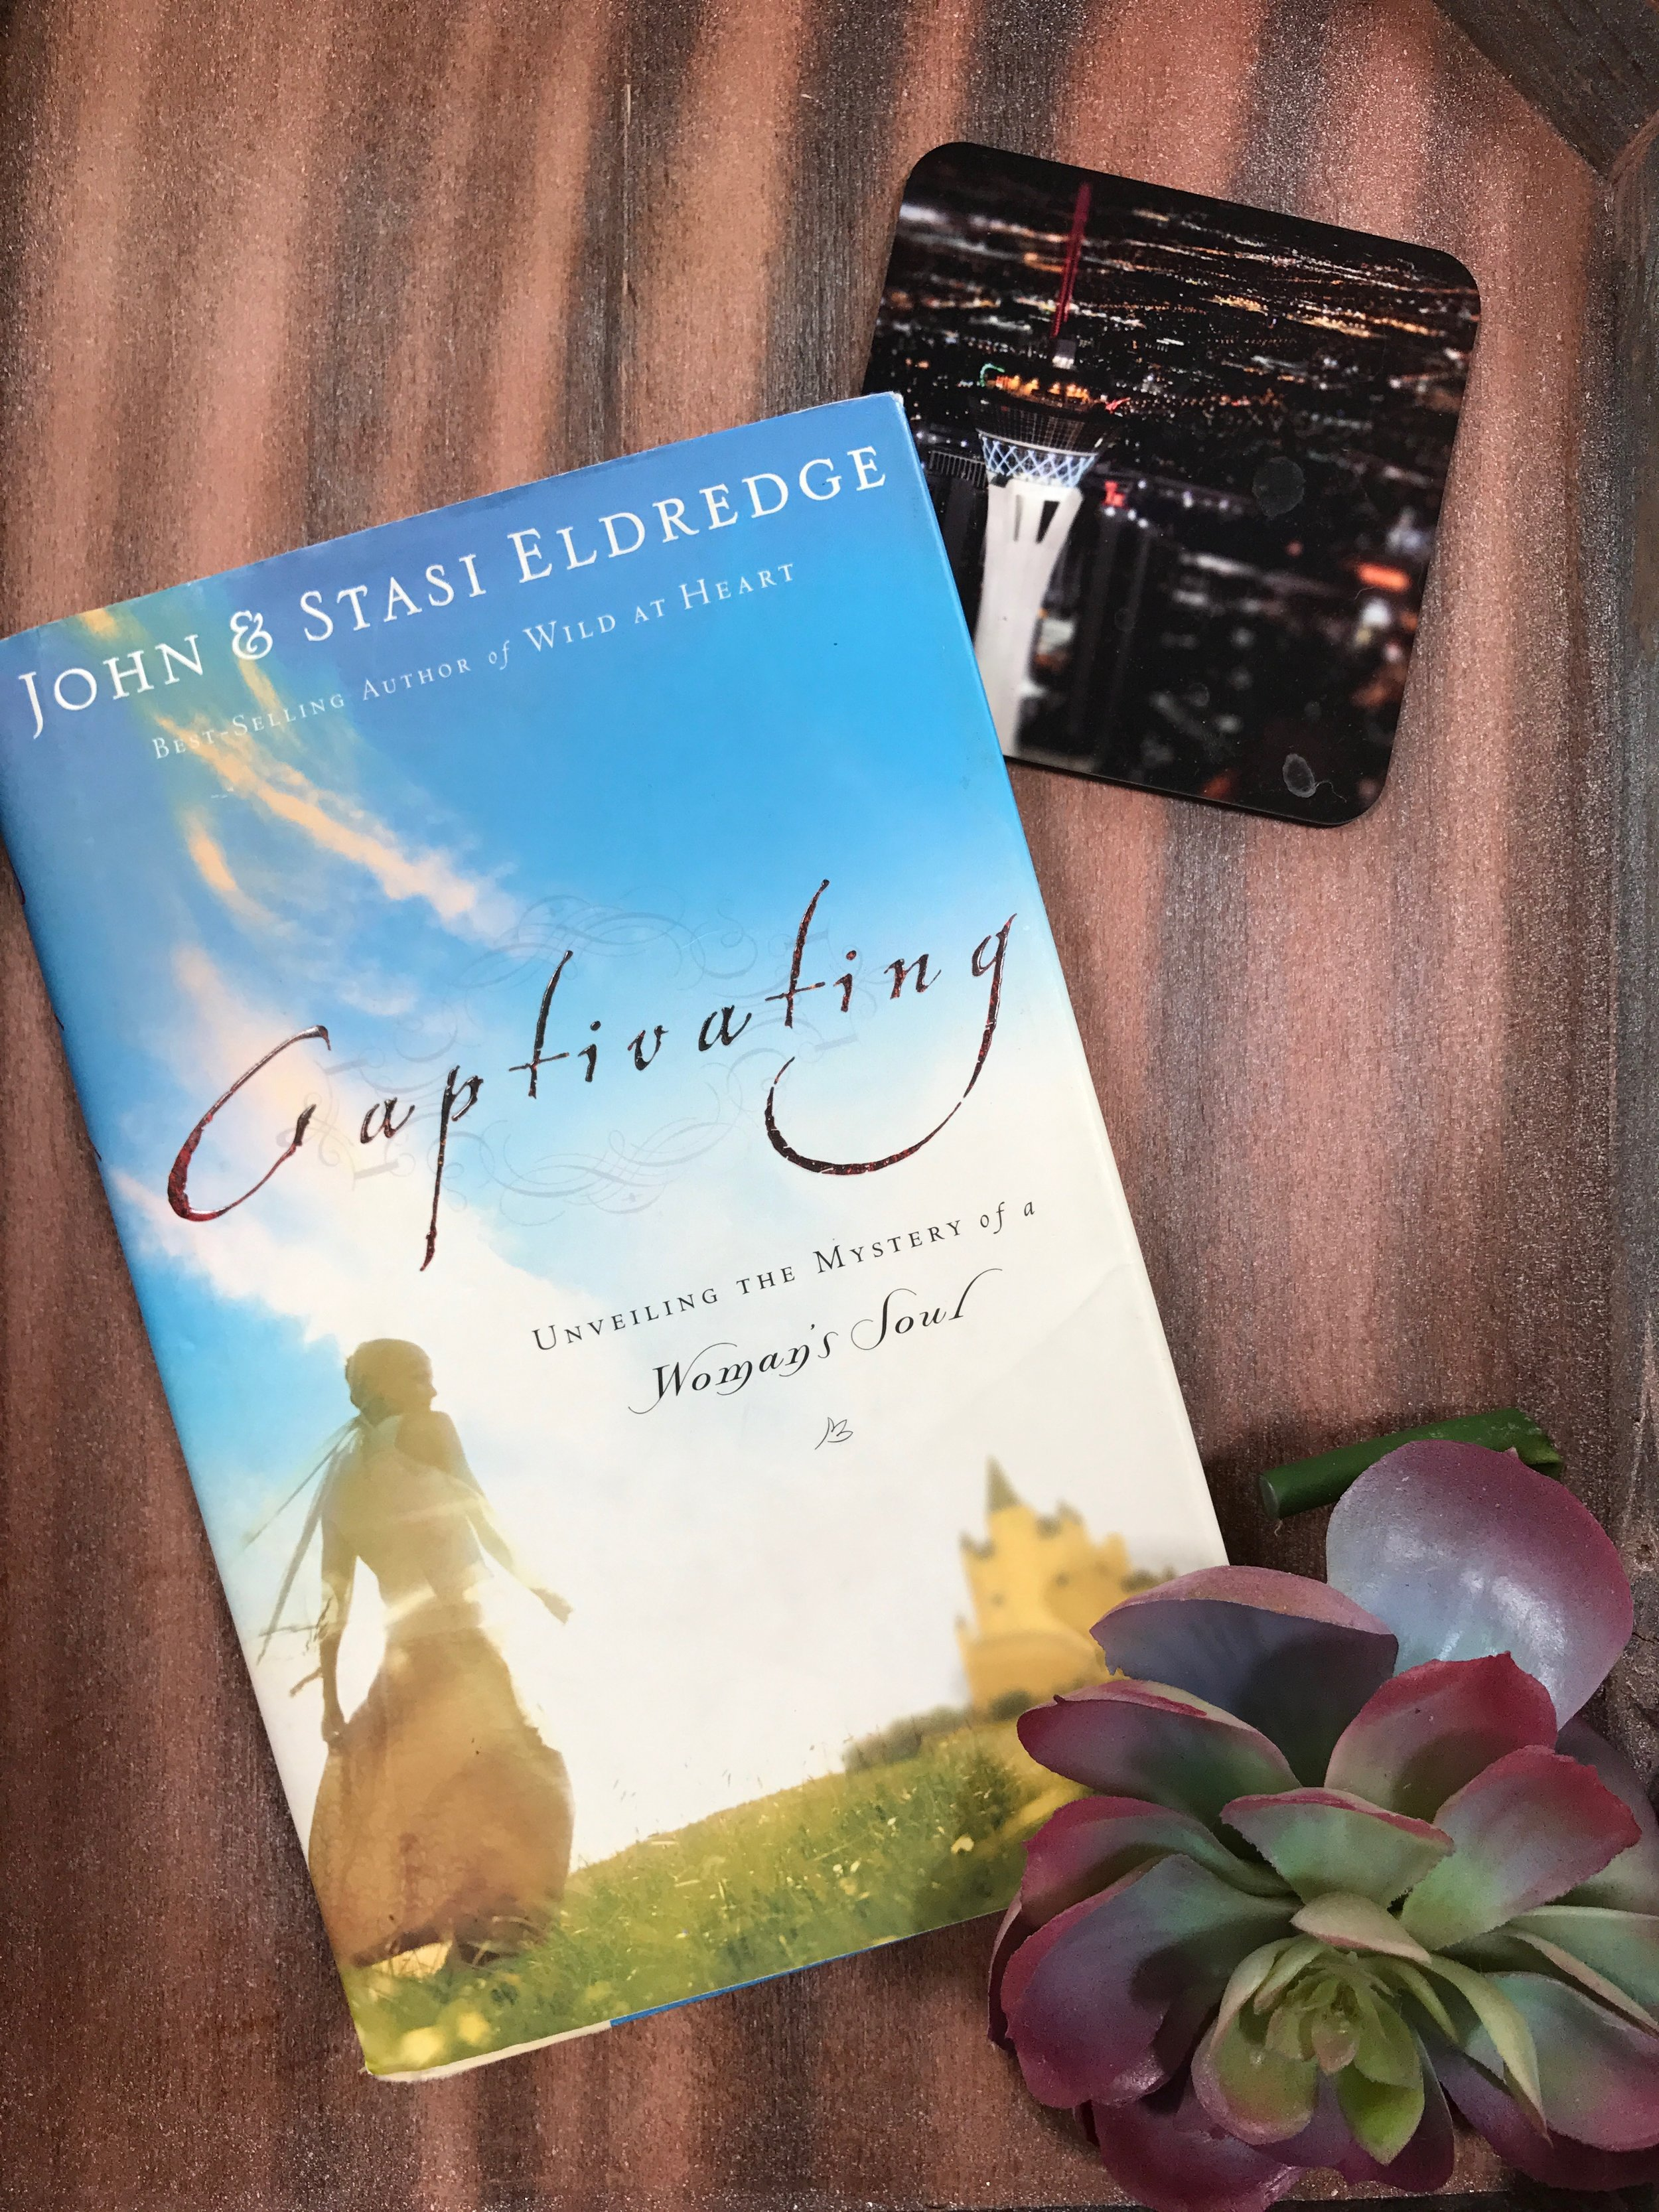 captivating by John and Stasi Eldredge a blog about healing